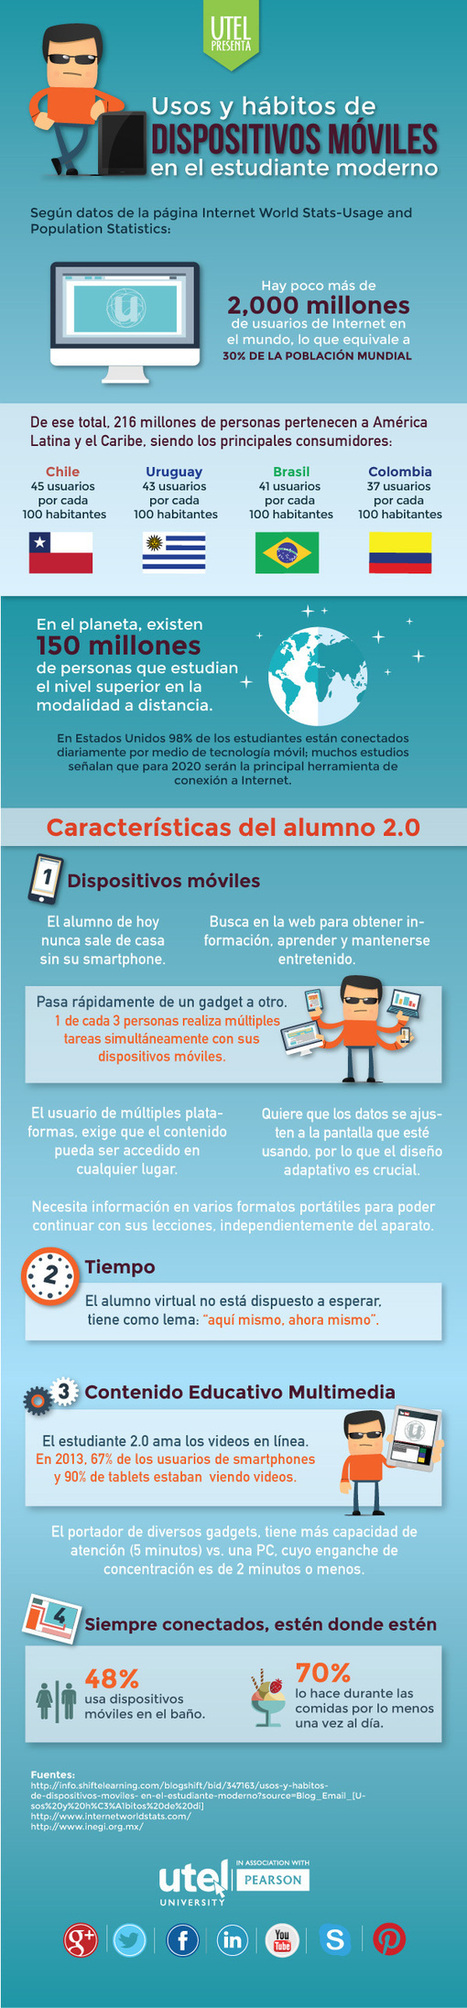 Cómo usan los dispositivos móviles los estudiantes #infografia #infographic #education | RecursosSM | Scoop.it